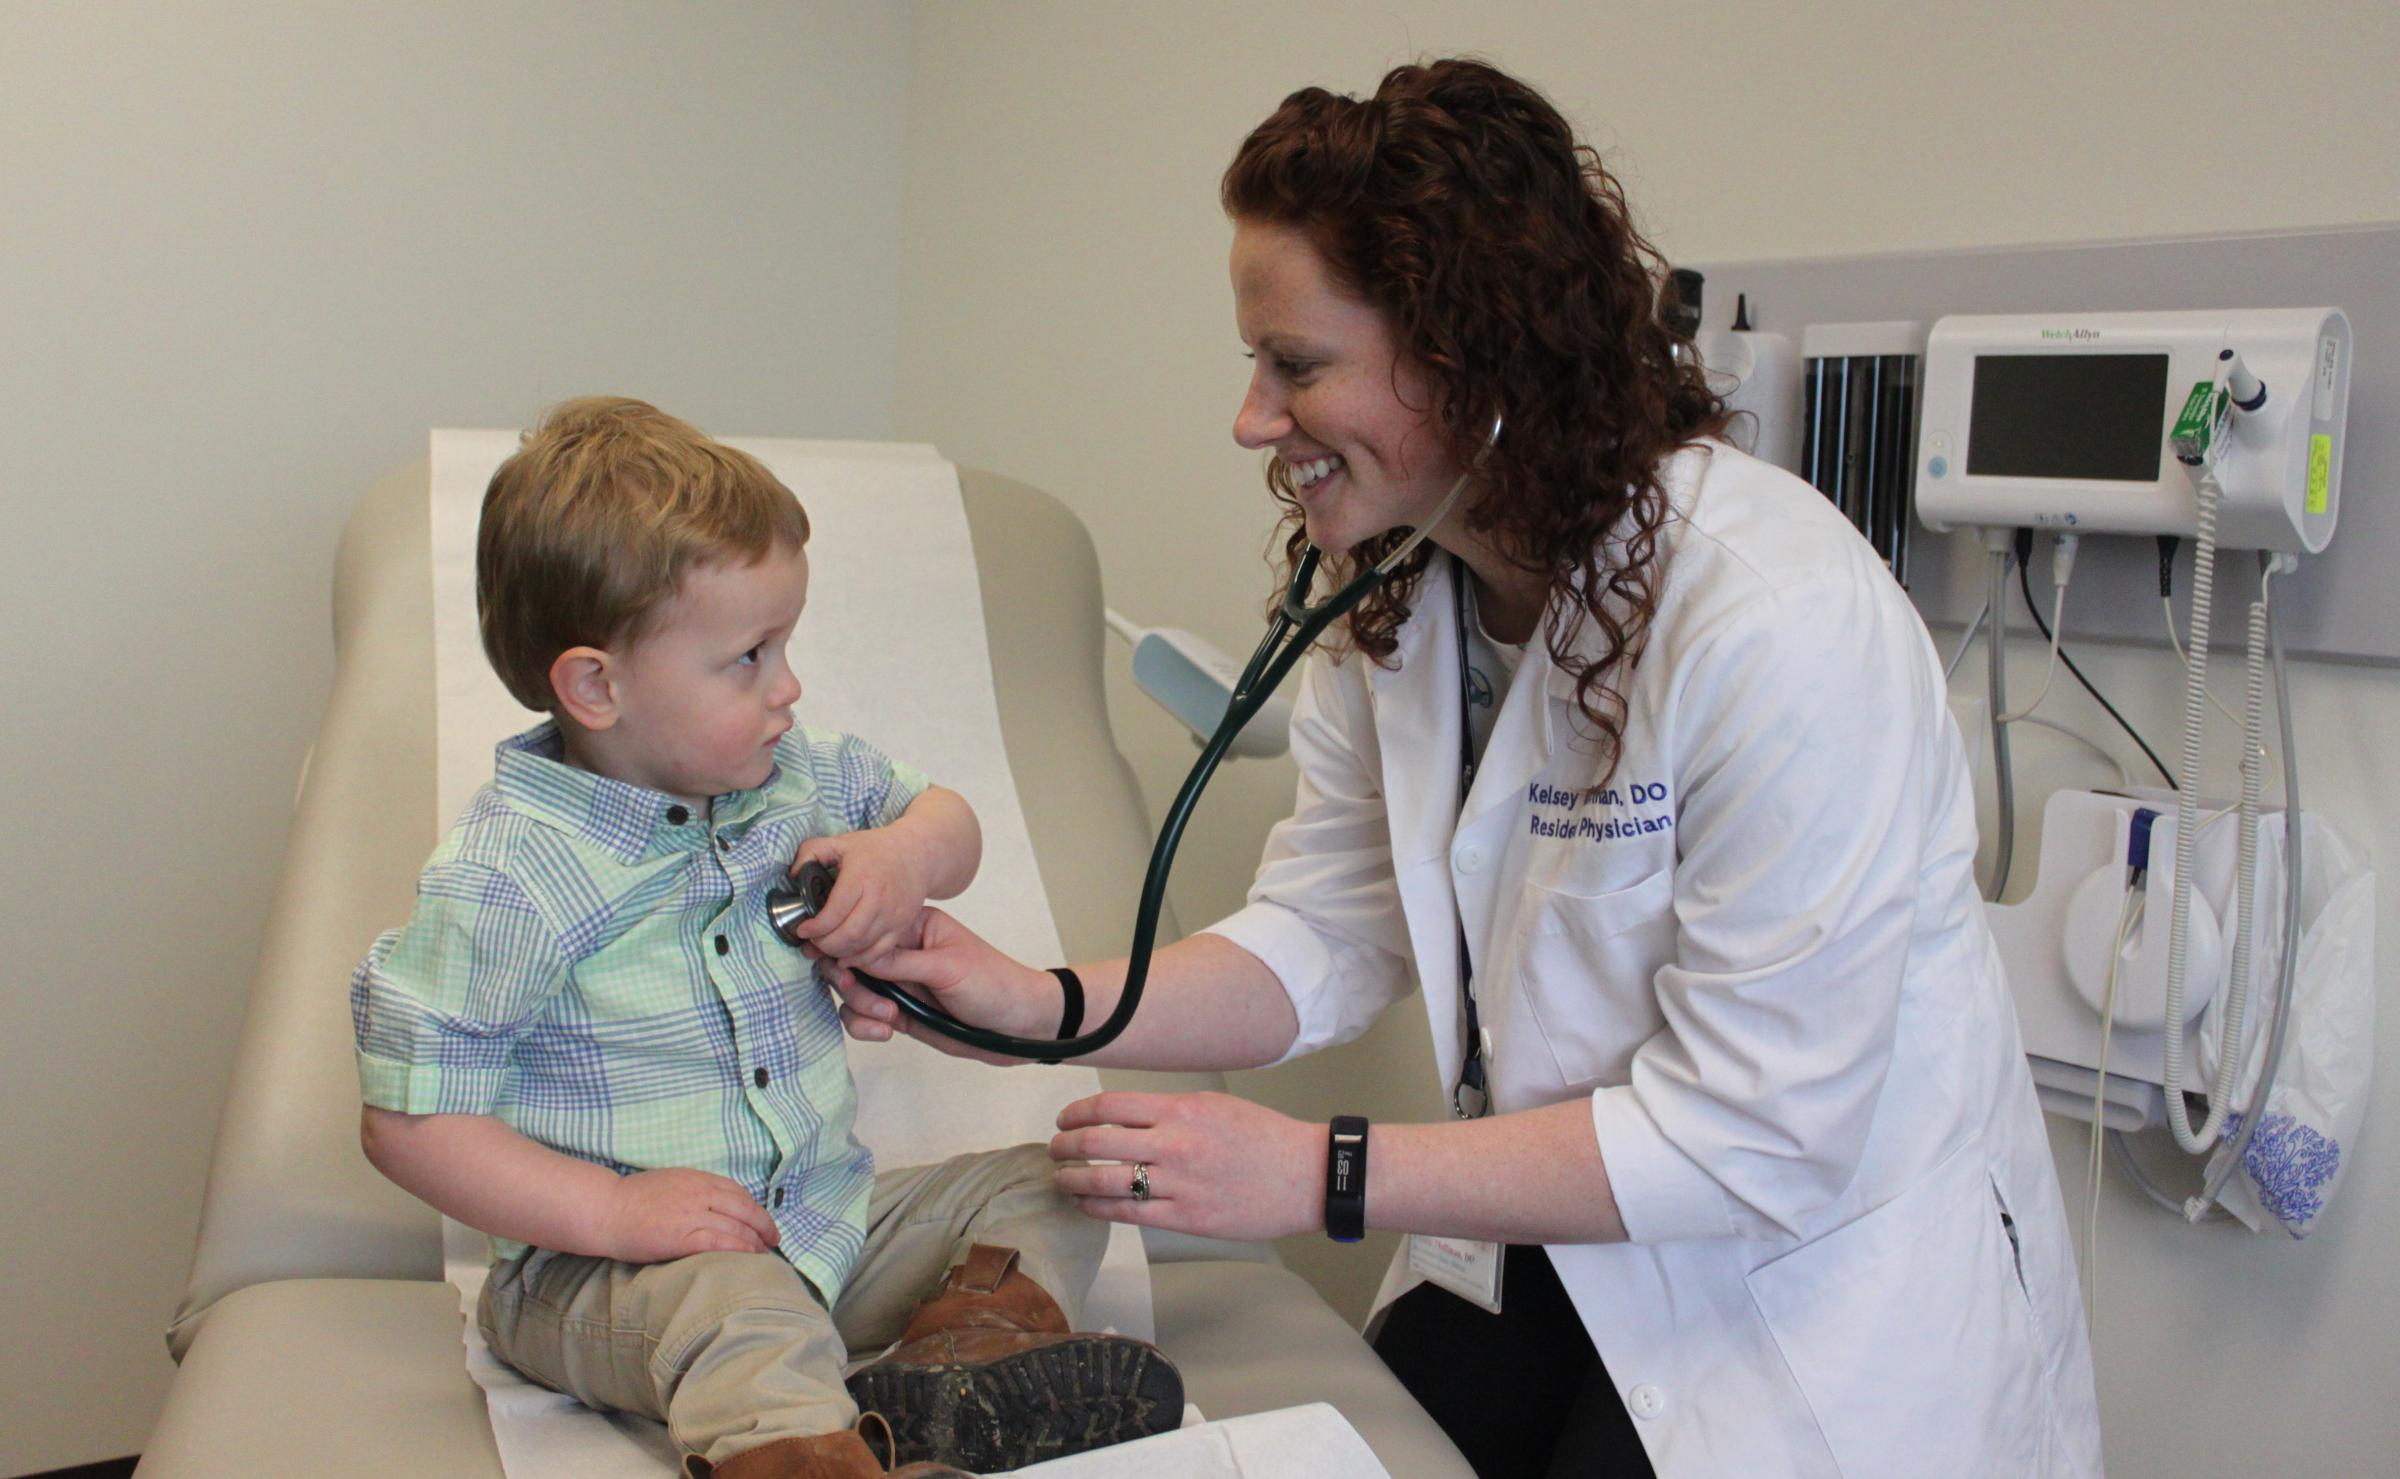 montana family medicine residency helps state fill doctor shortages